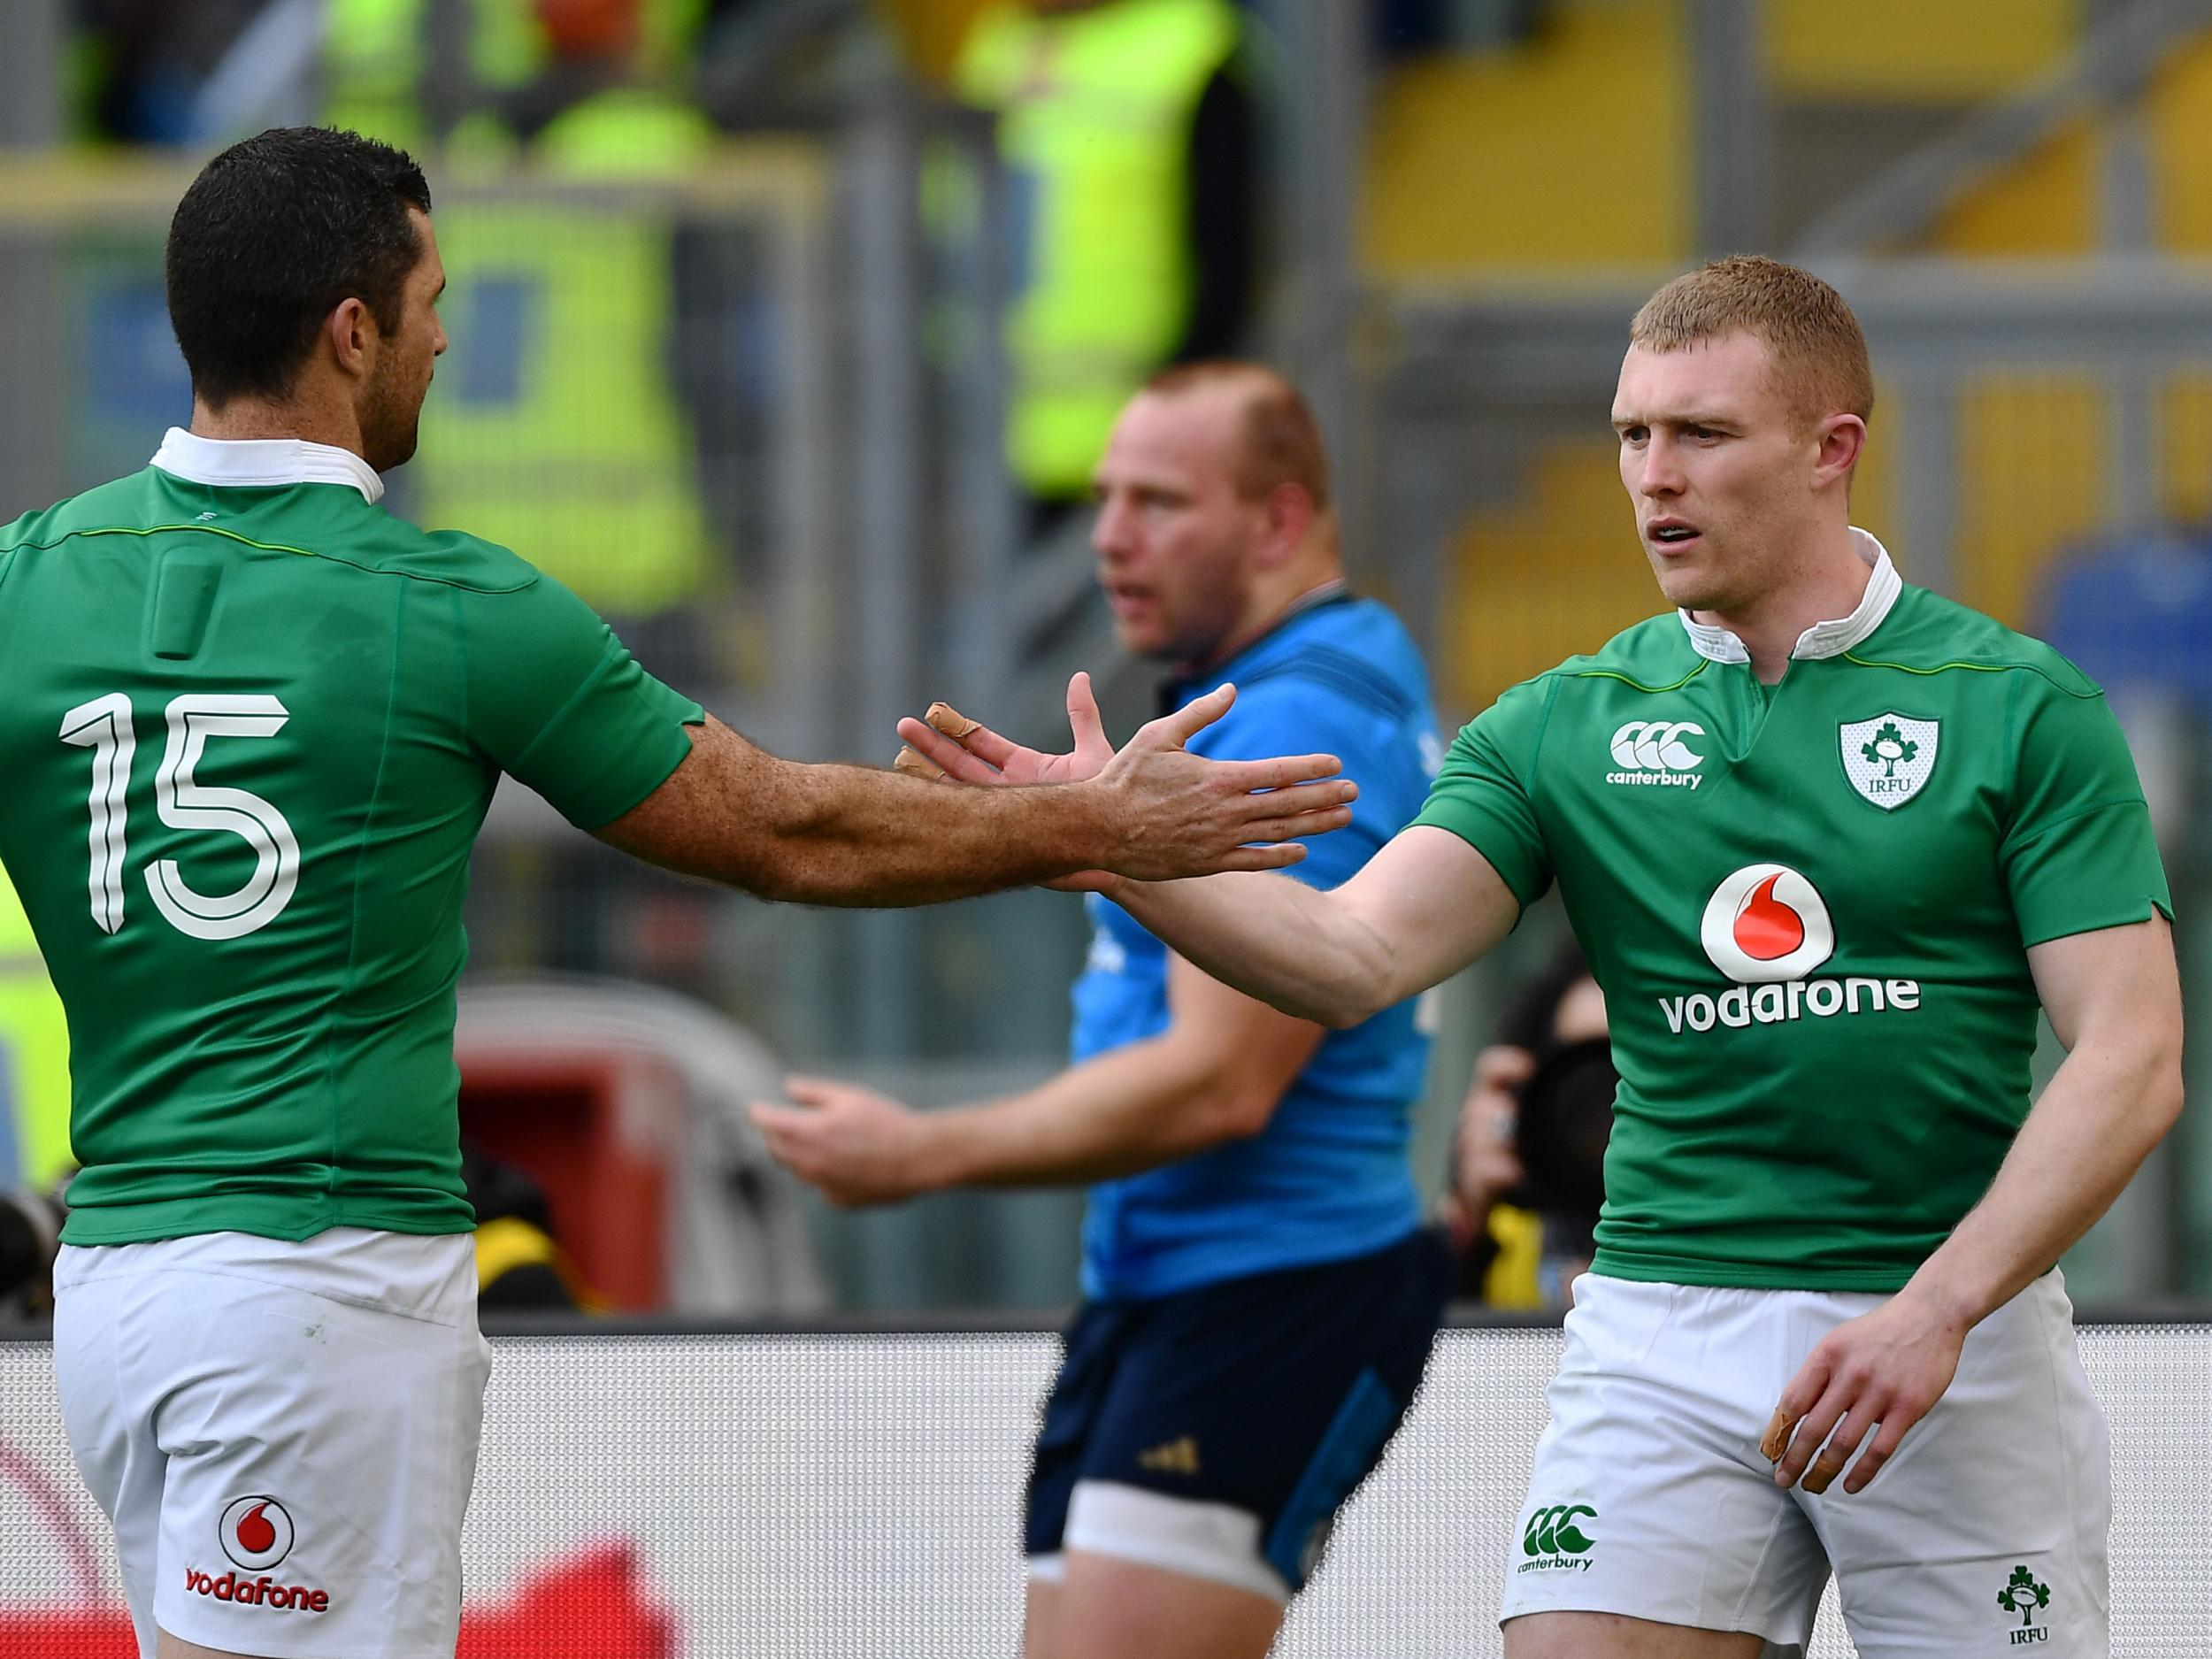 Rugby World Cup 2019: Ireland name team for Scotland clash with Rob Kearney and Keith Earls not fit to play